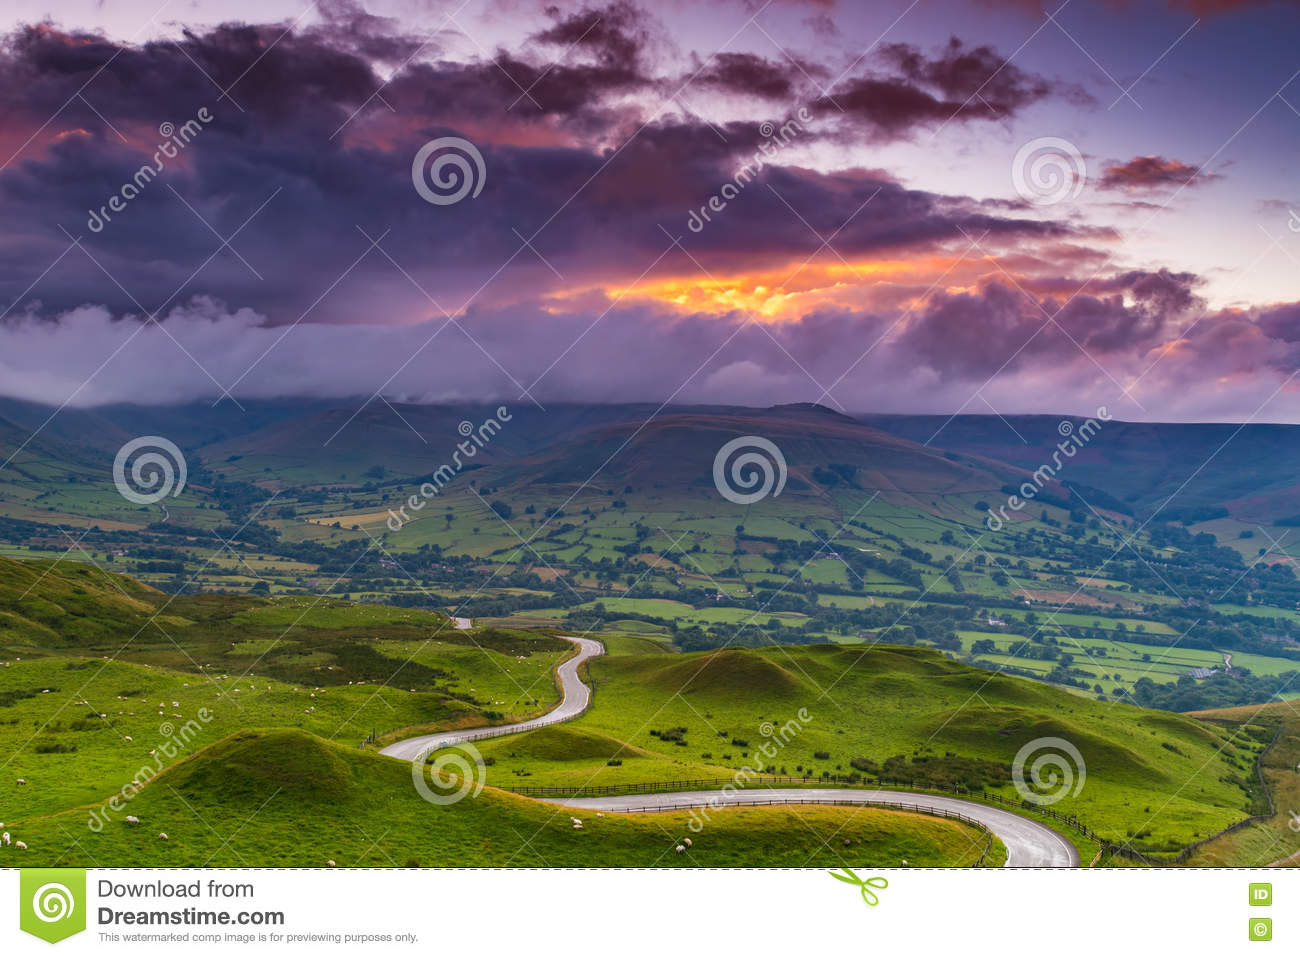 Cloudy landscape at sunset in the Peak District, Derbyshire, UK